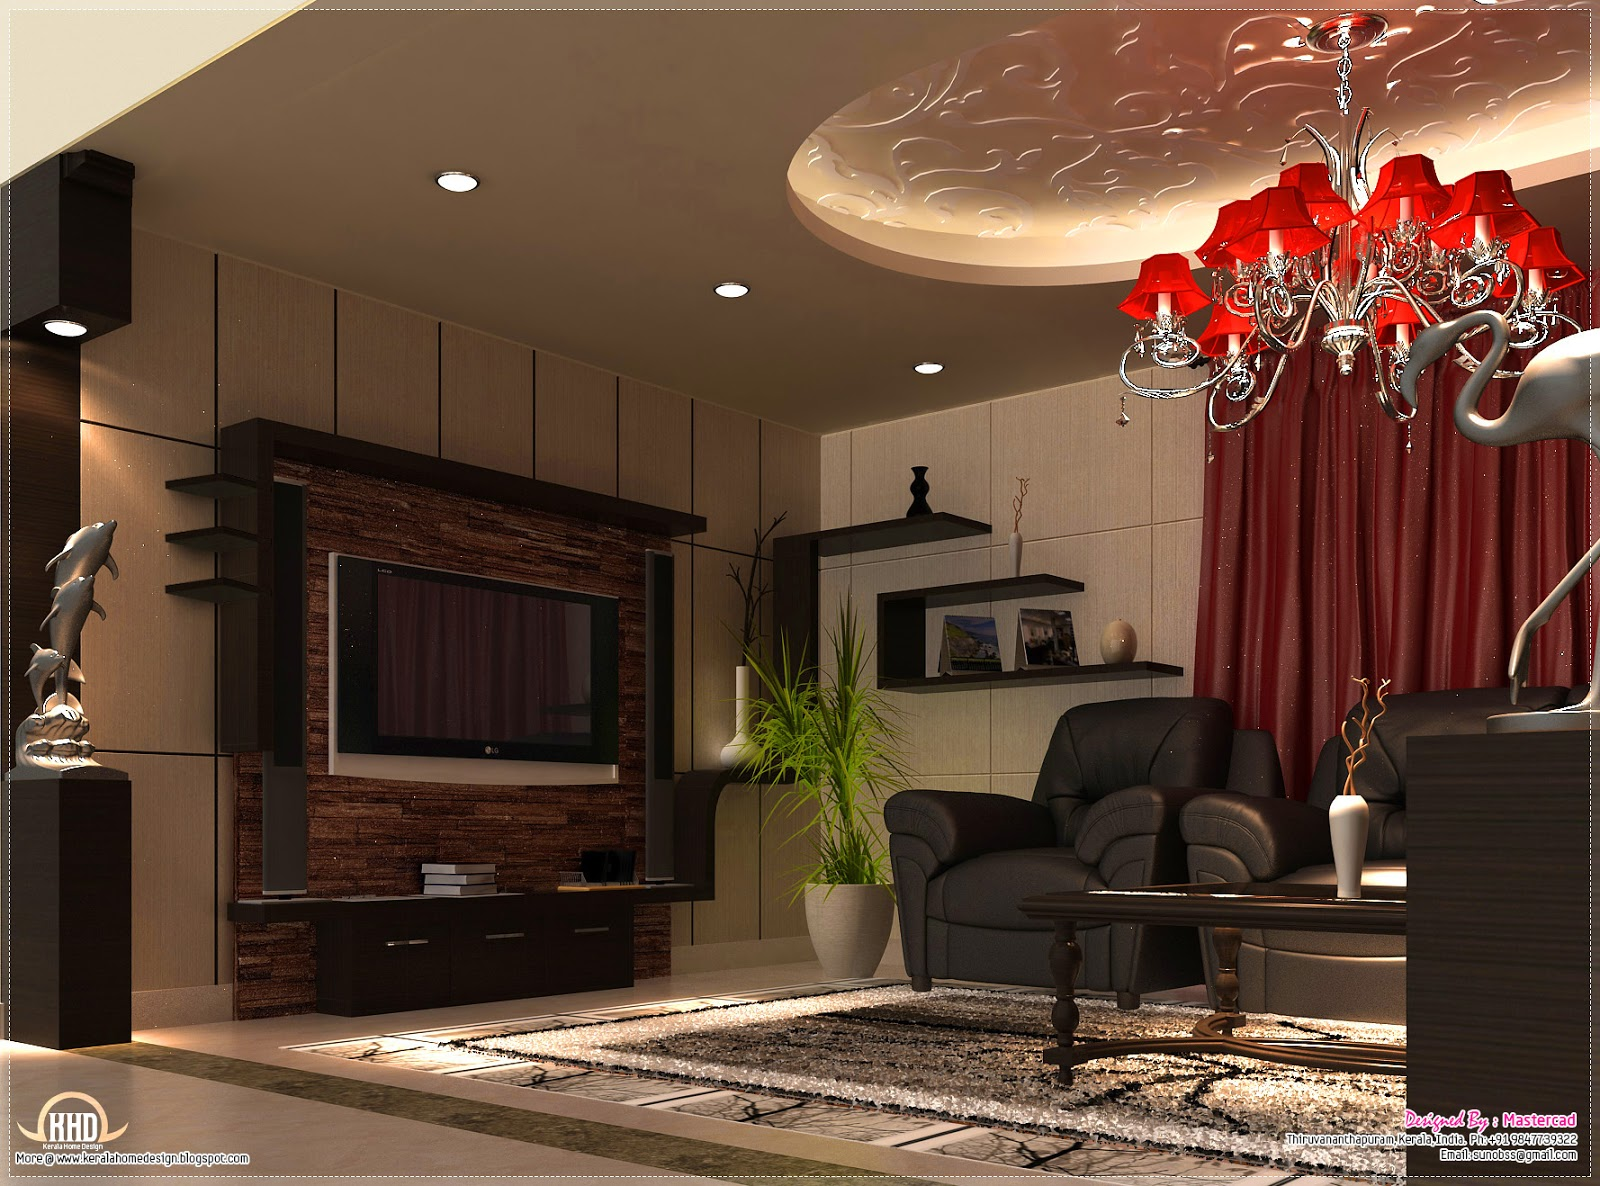 Interior design ideas kerala home design and floor plans for Interior design ideas